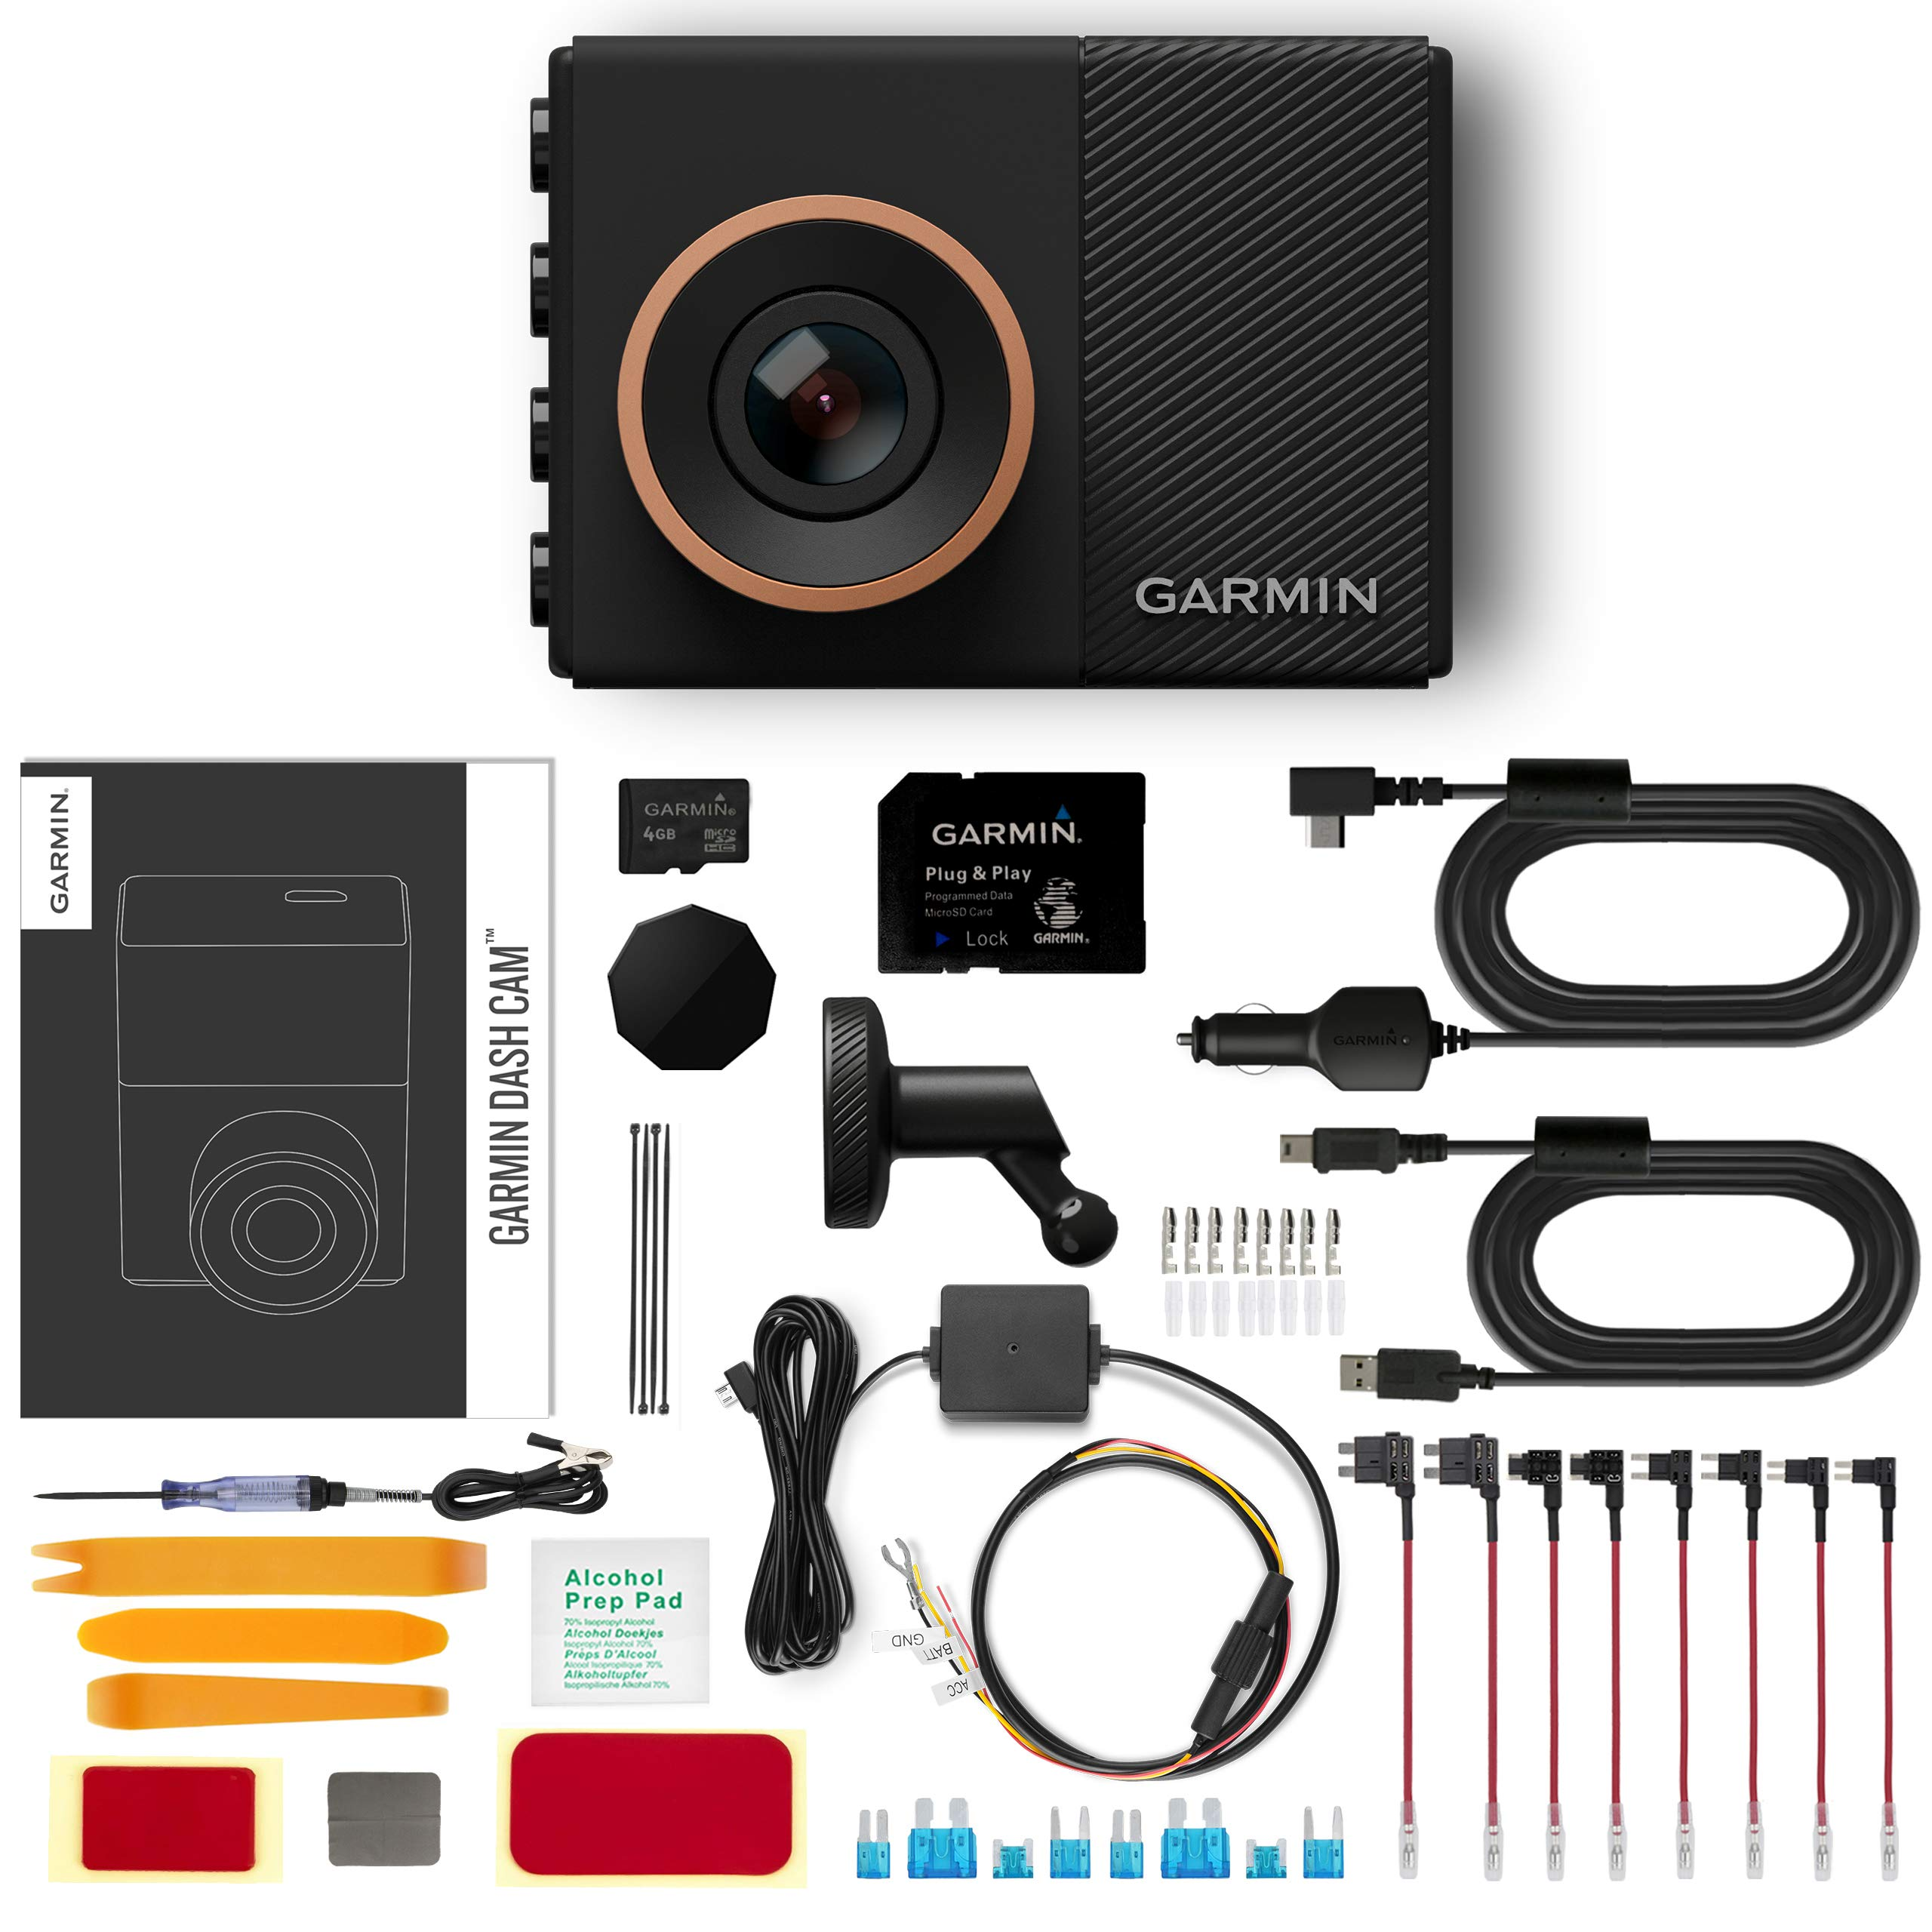 Garmin Dash Cam 55 Parking Mode Bundle with Installation Tool Kit | Parking Mode Cable and Hardwire Installation Kit Included | 8GB MicroSD Card,WiFi, 1440P, GPS, Voice Control, Timelapse